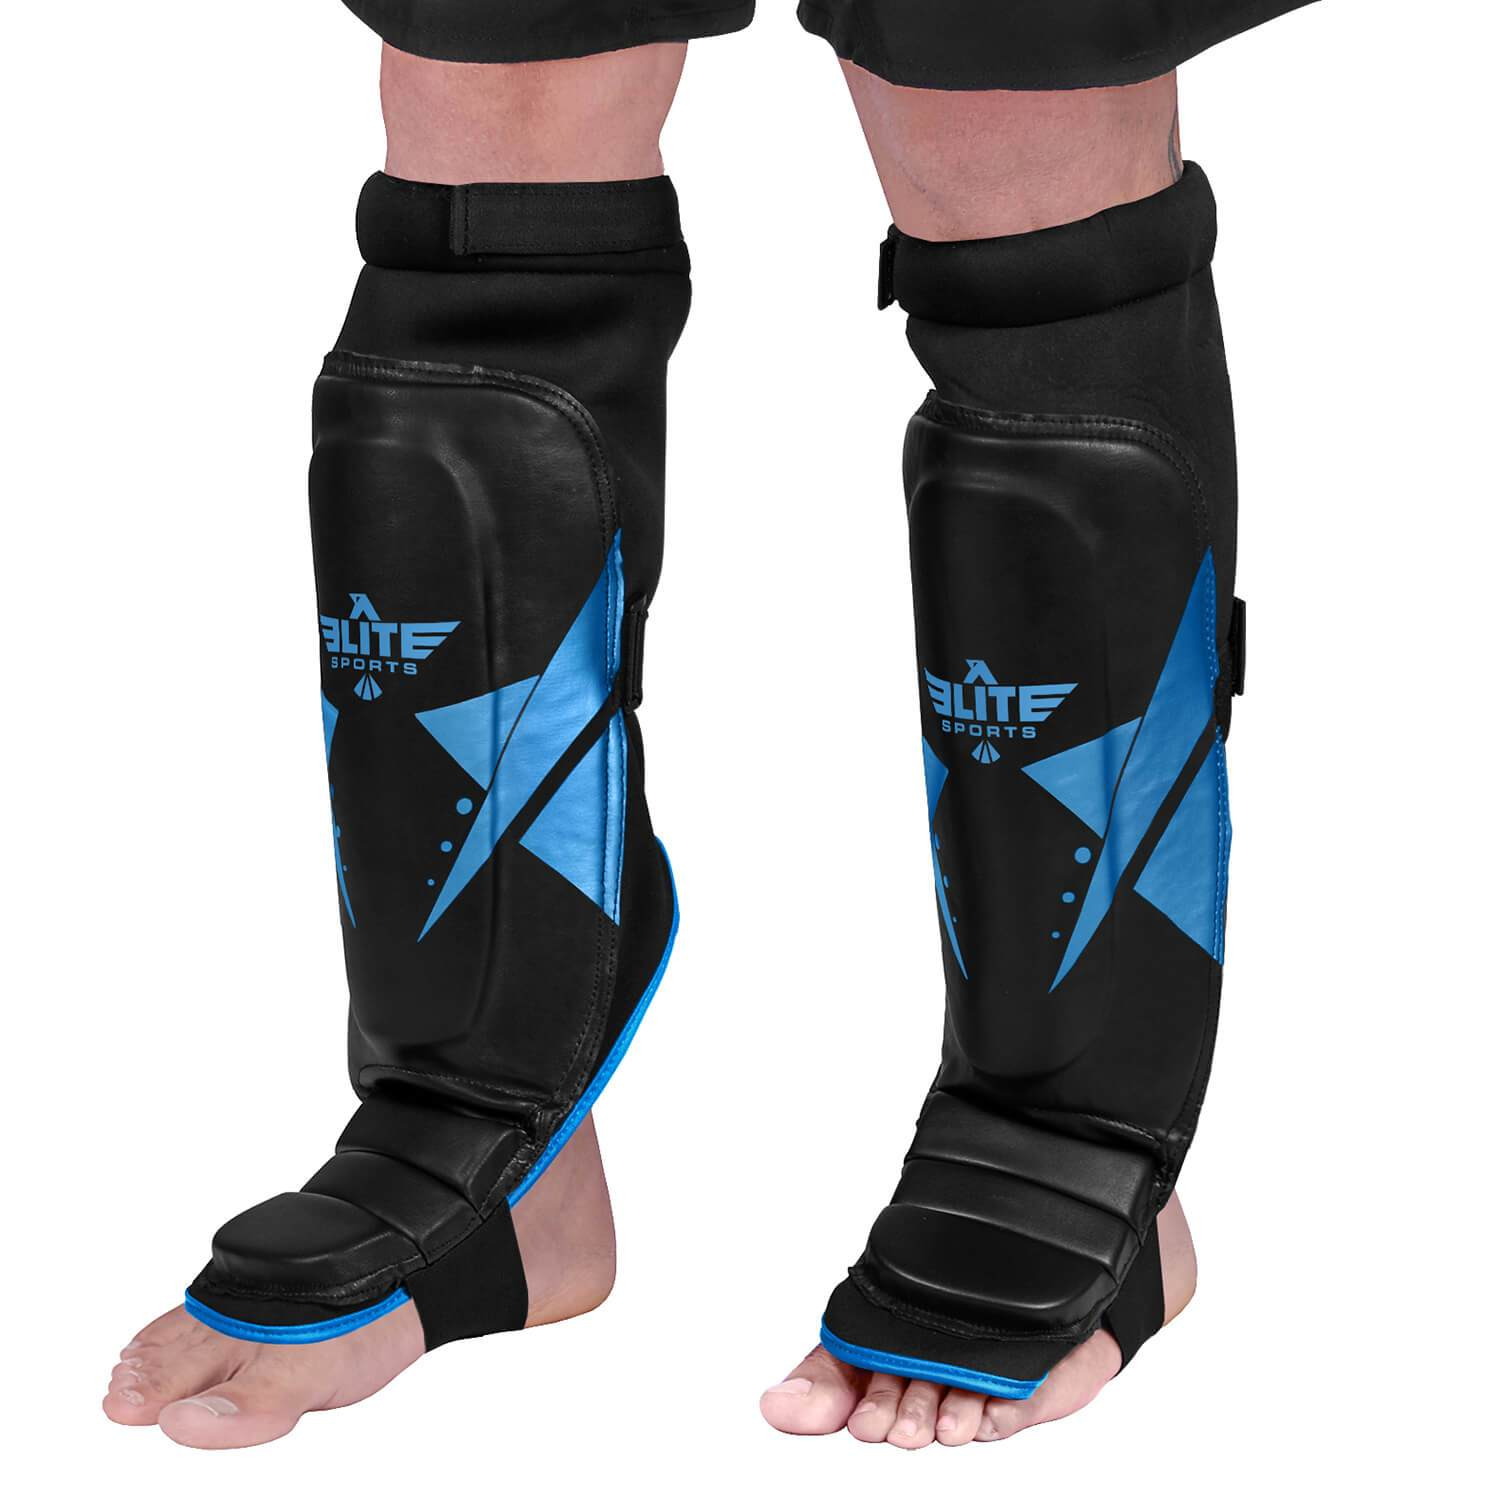 Elite Sports Star Series Black/Blue Wrestling Shin Guards